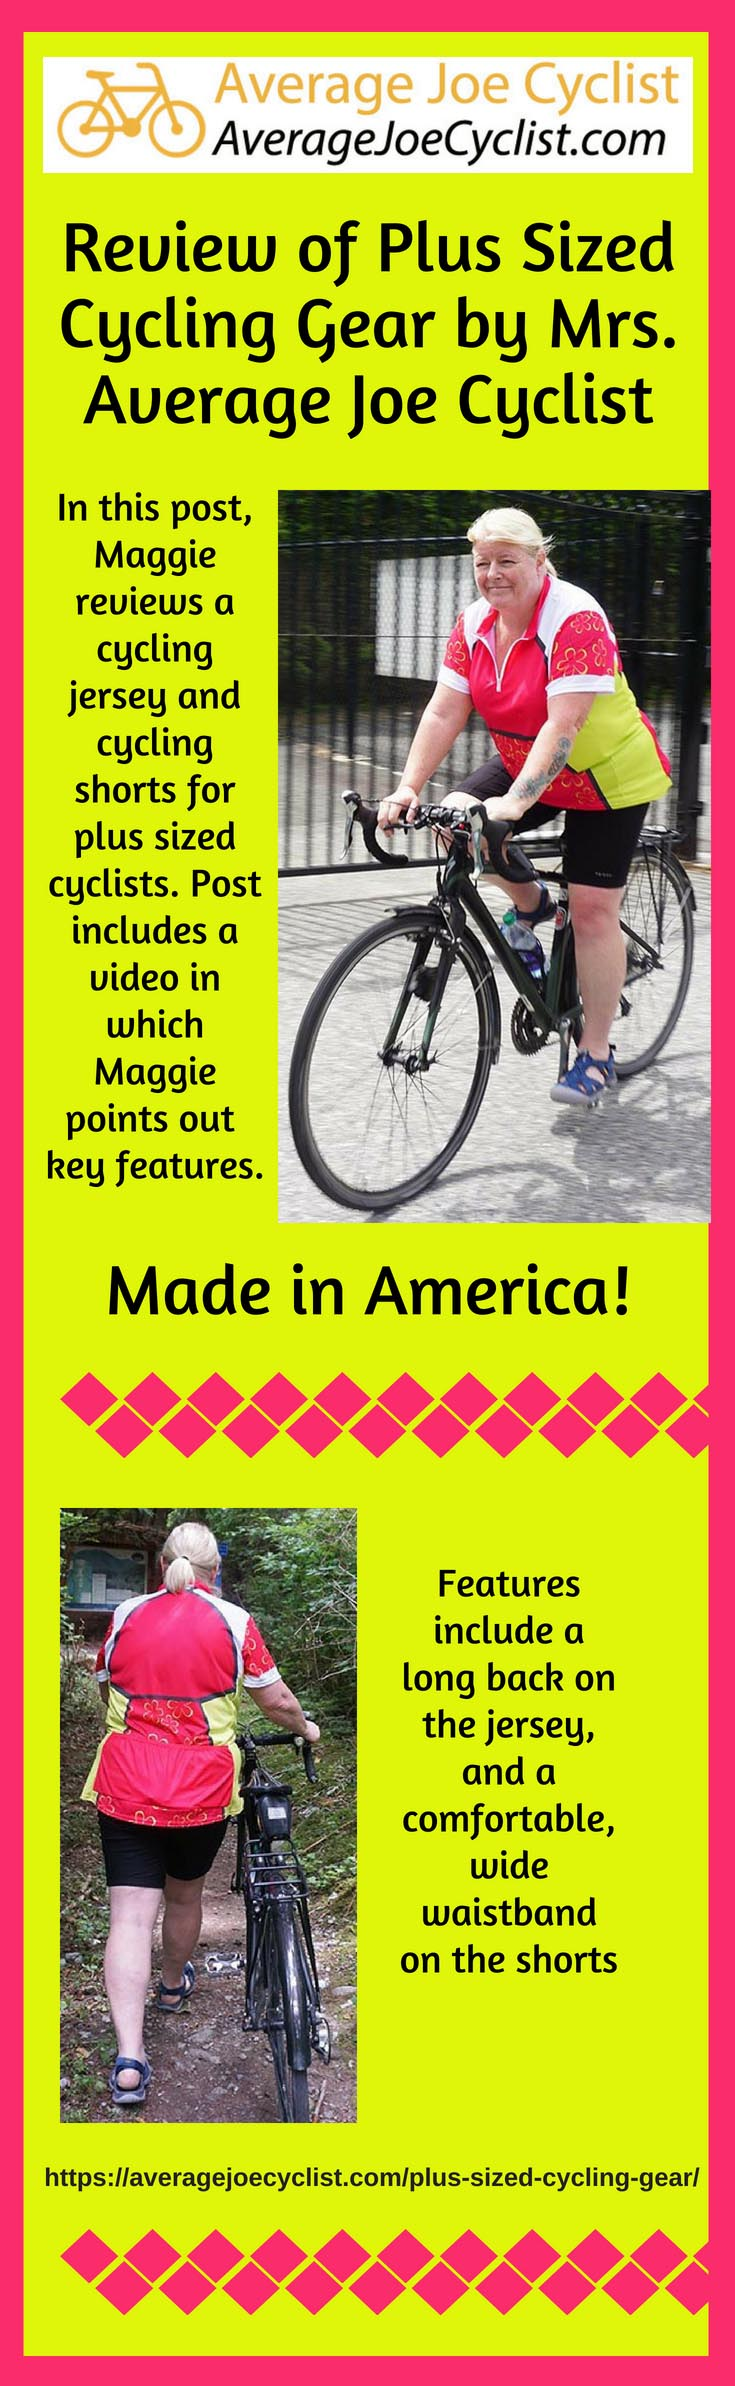 Review of Plus Sized Cycling Gear by Mrs. Average Joe Cyclist 9abfef5bc